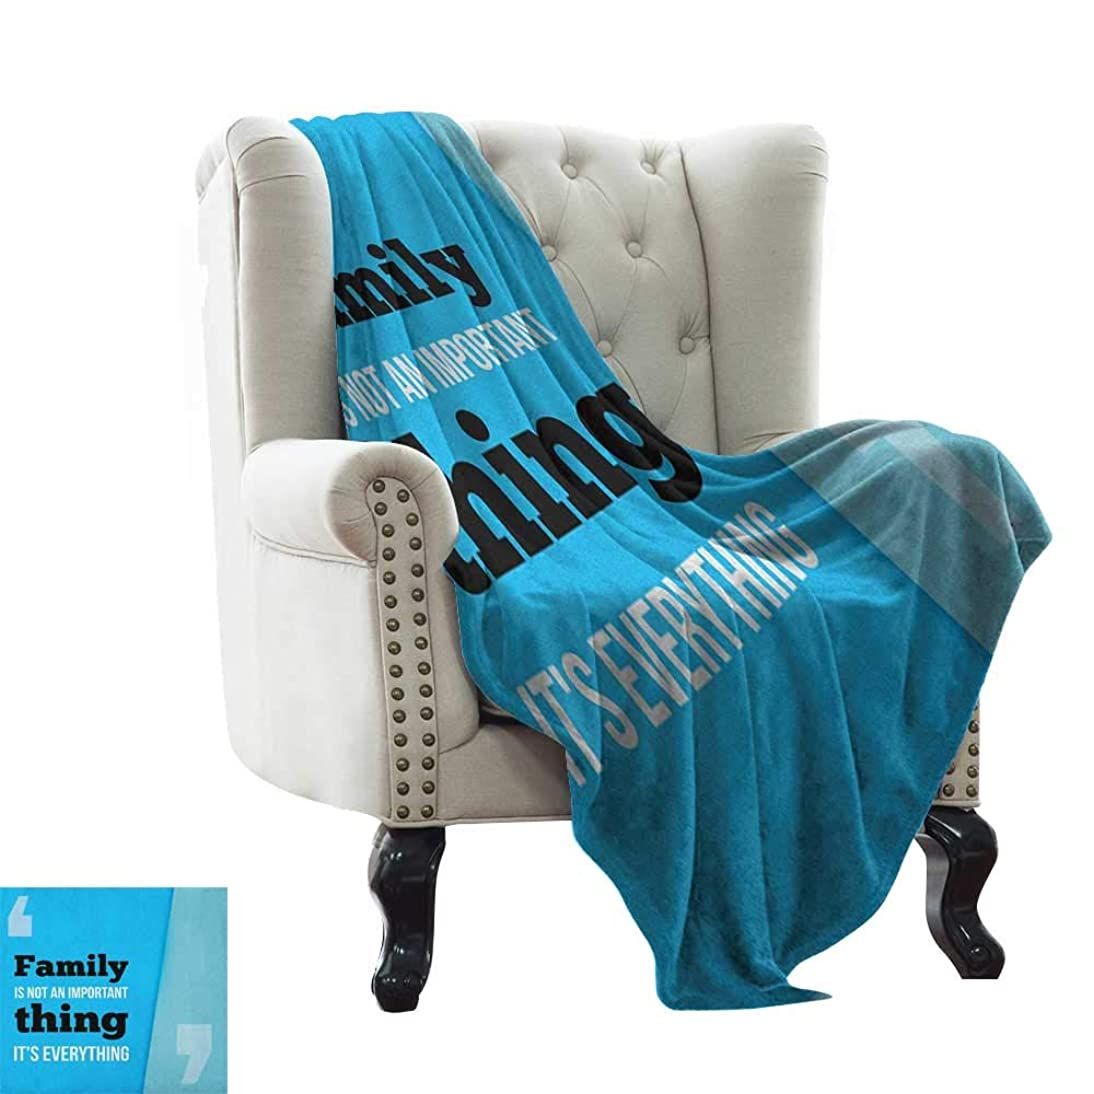 dog blanket Family,Family is Everything in Quotation Marks Inspirational Phrase Modern Design, Turquoise Blue Black Sofa Super Soft, Plush, Fuzzy Microfiber Throw Reversible,Comfy 50